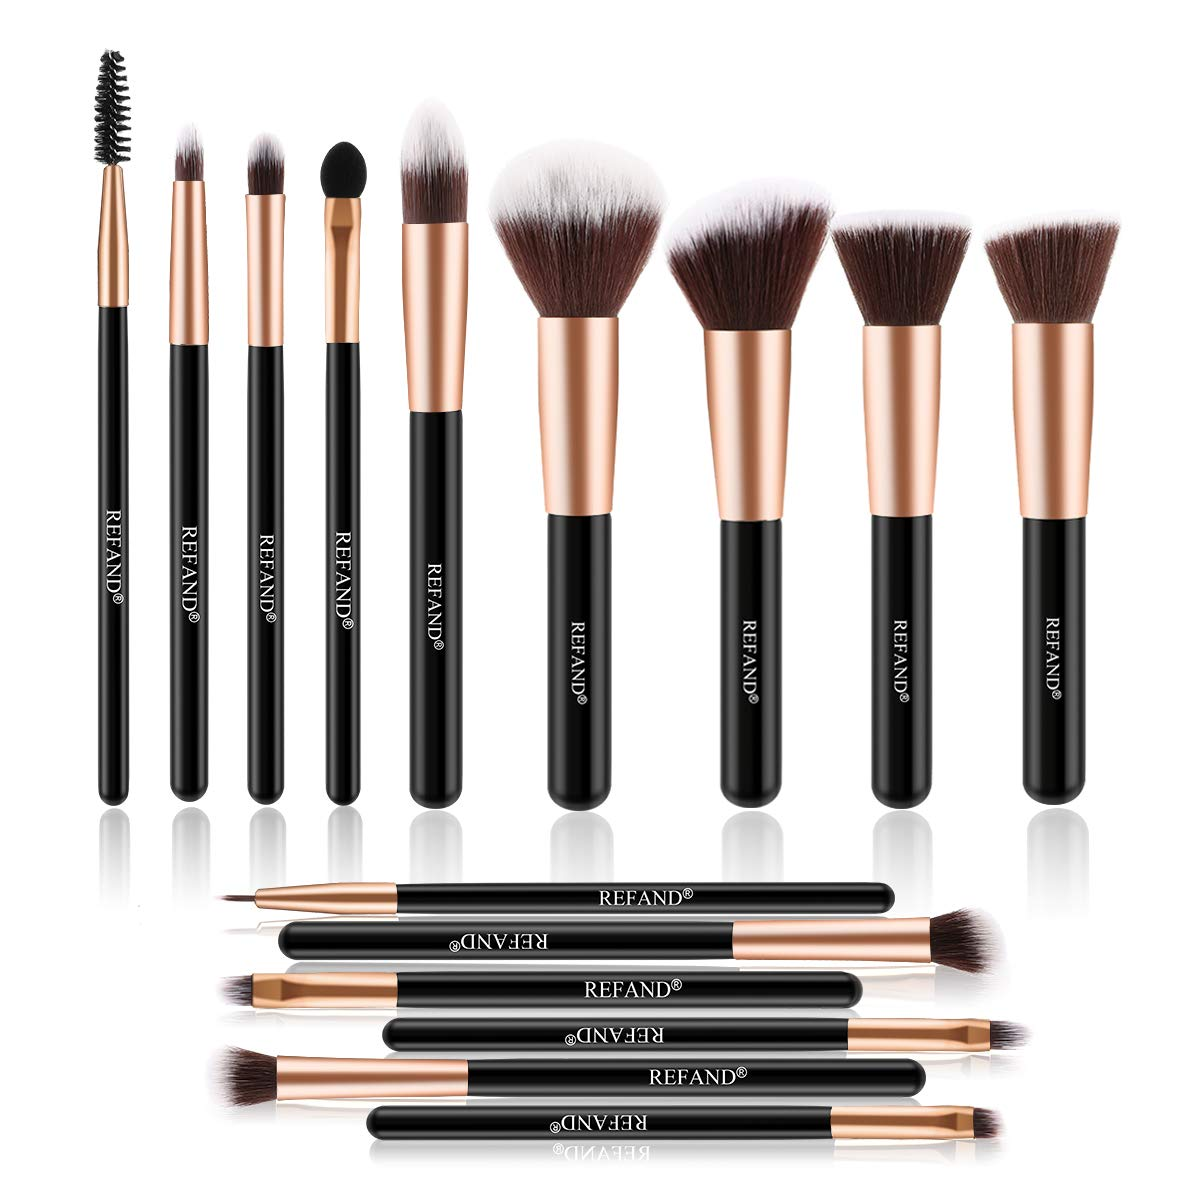 Refand Makeup Brushes Premium Makeup Brush Set Professional Makeup Kit Gold Black 10 pcs